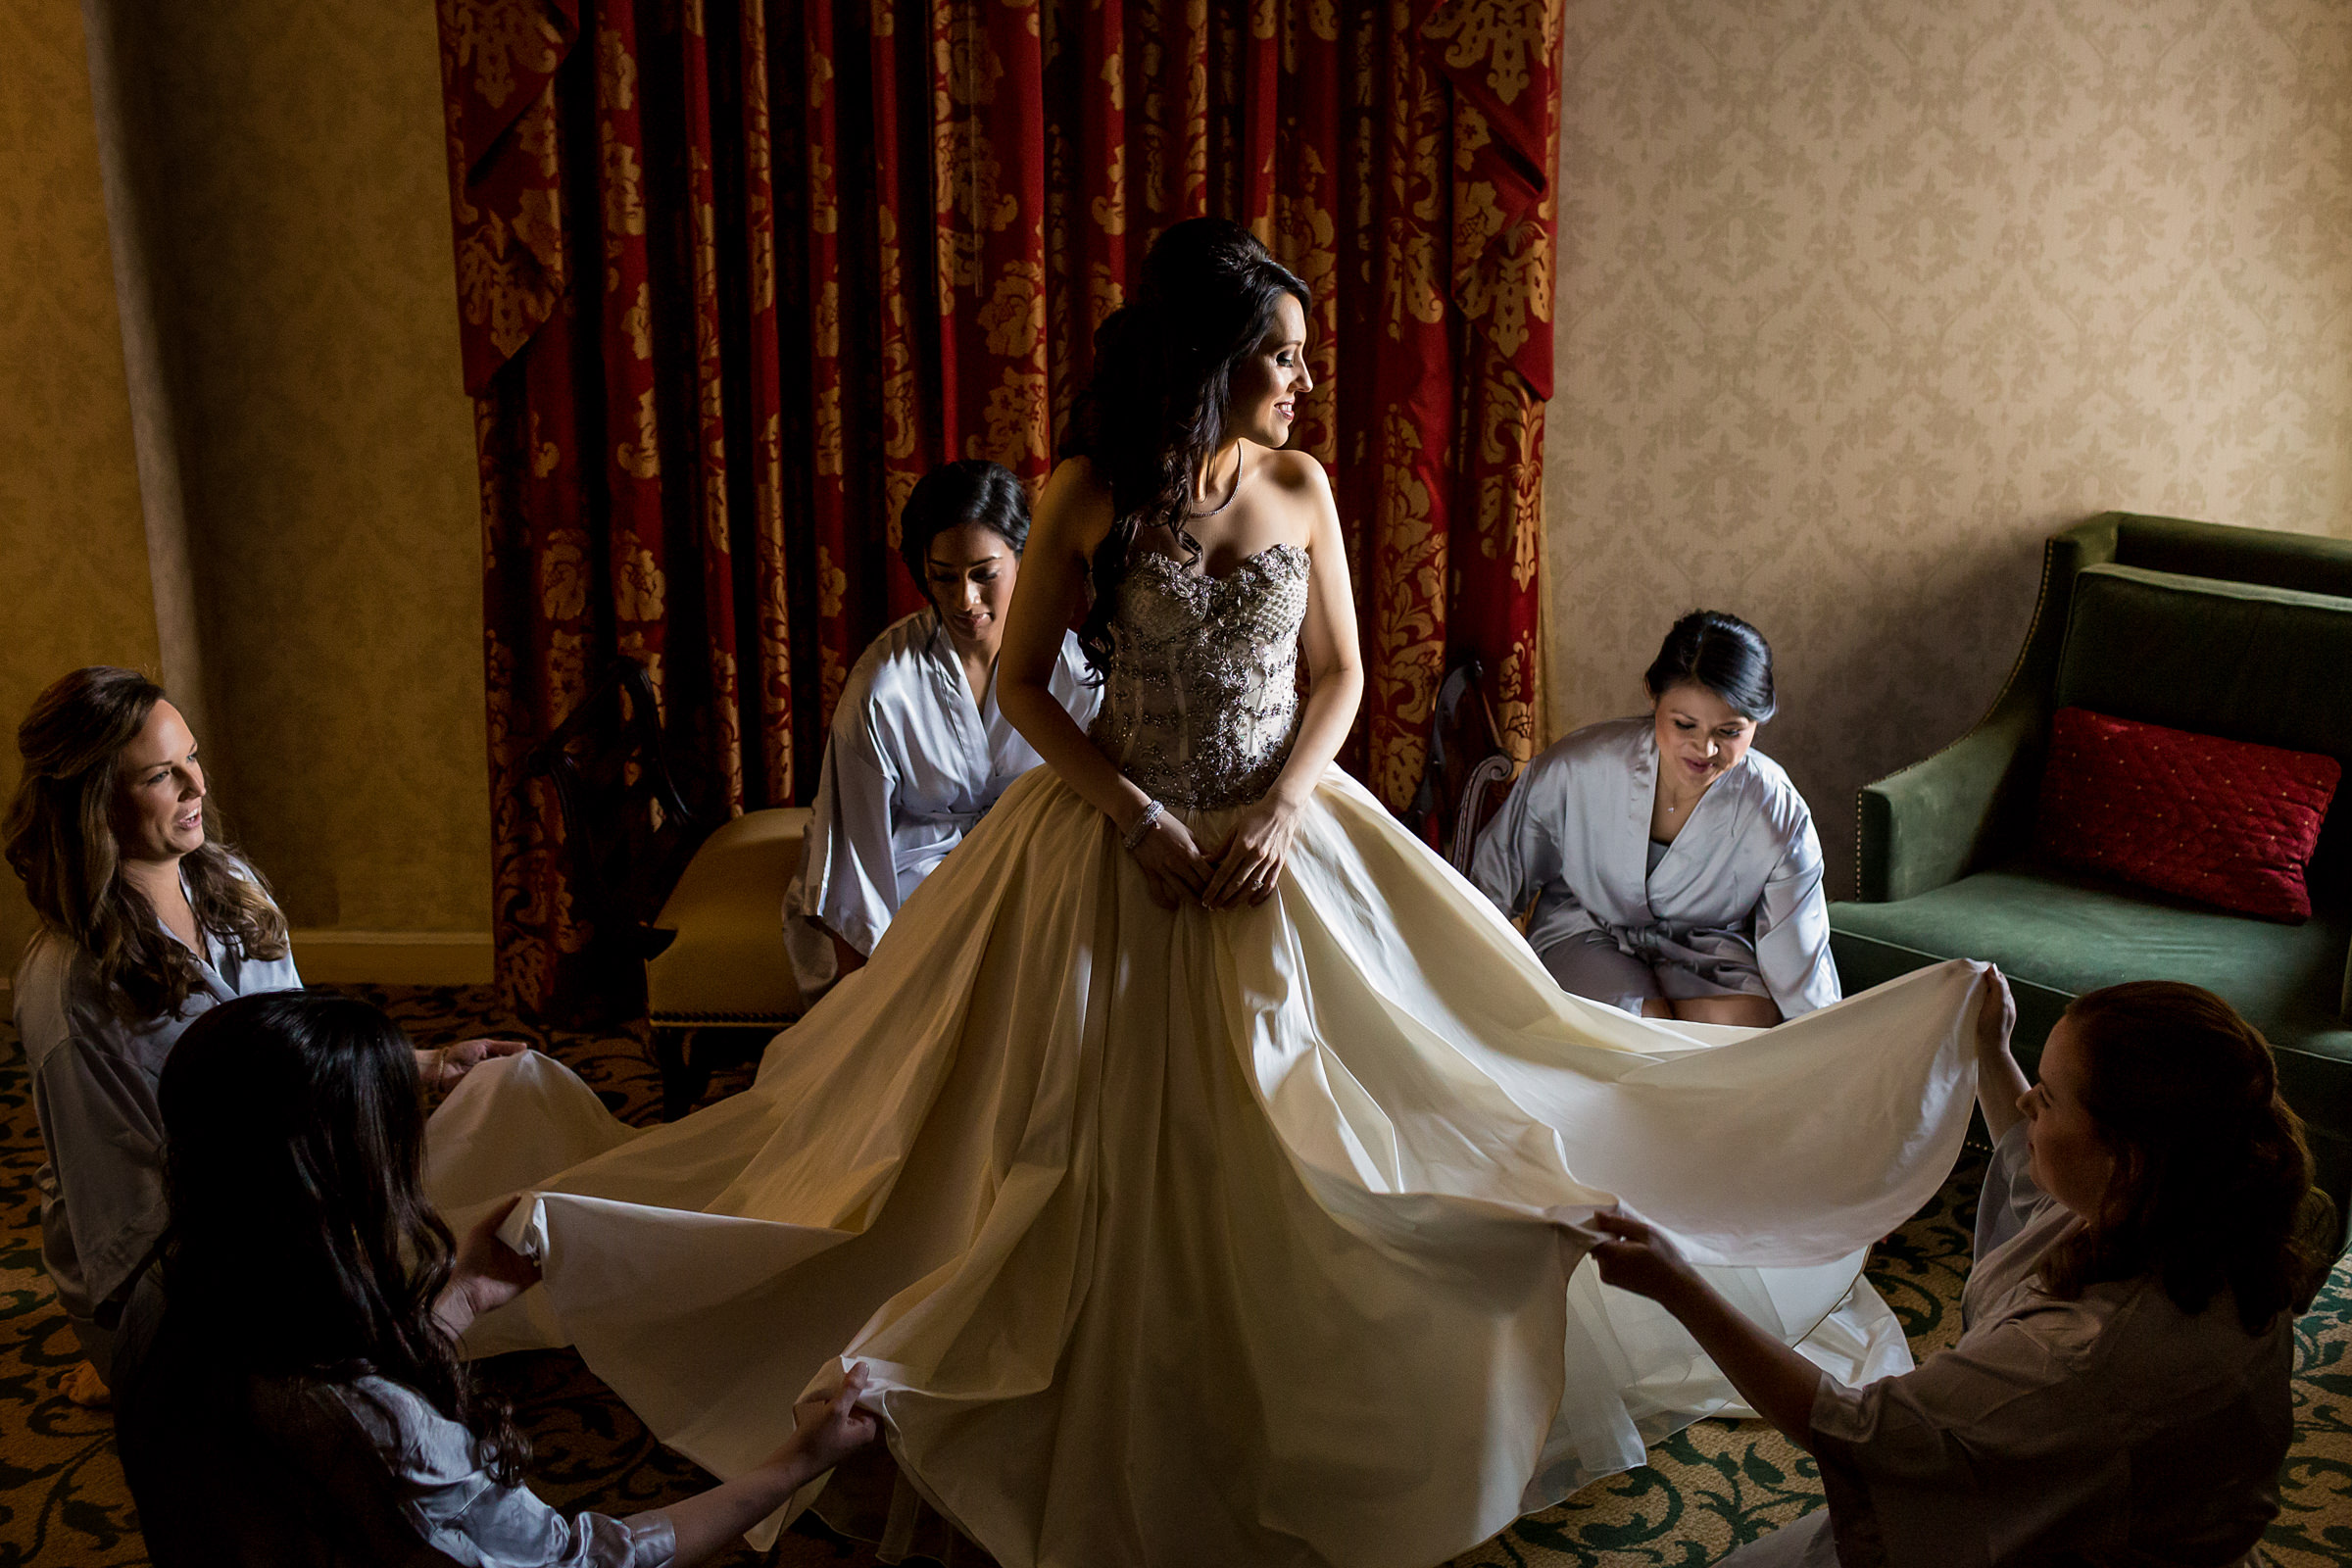 Bridal party arranging bride's gown - photo by Procopio Photography